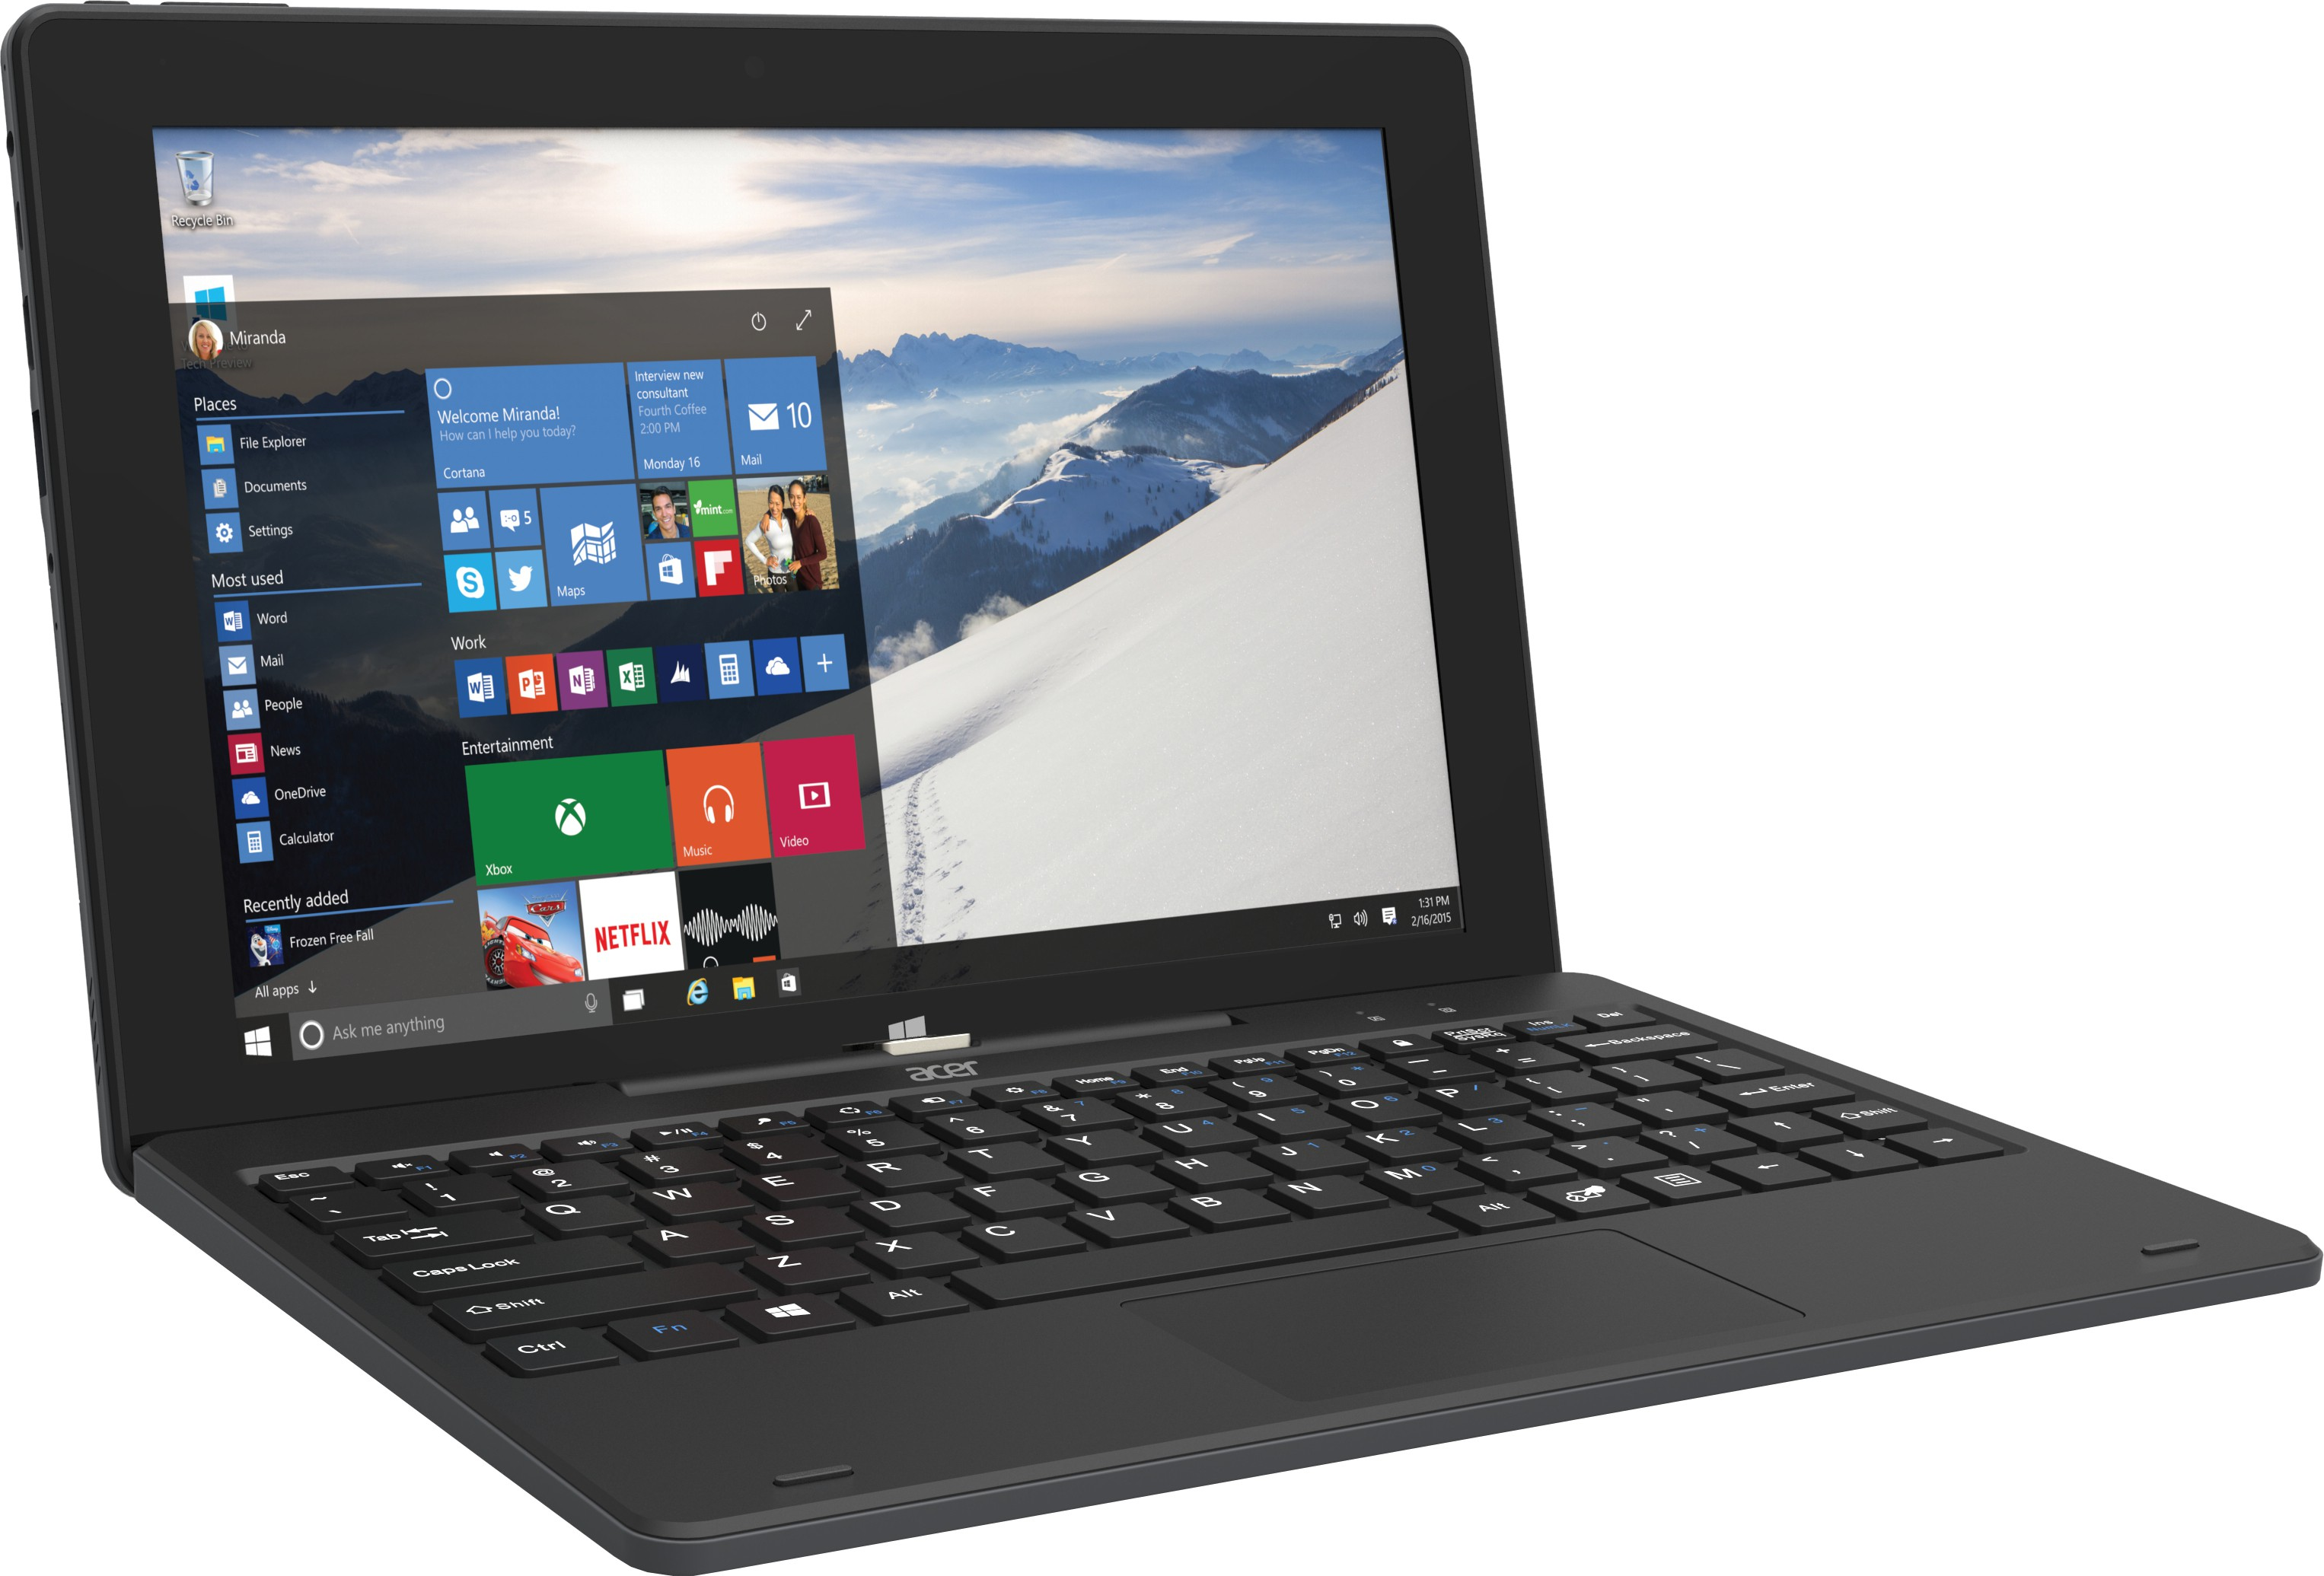 Acer Switch One Atom Quad Core - (2 GB/32 GB EMMC Storage/Windows 10 Home) SW110-1CT 2 in 1 Laptop(10.1 inch, Black) (Acer) Tamil Nadu Buy Online